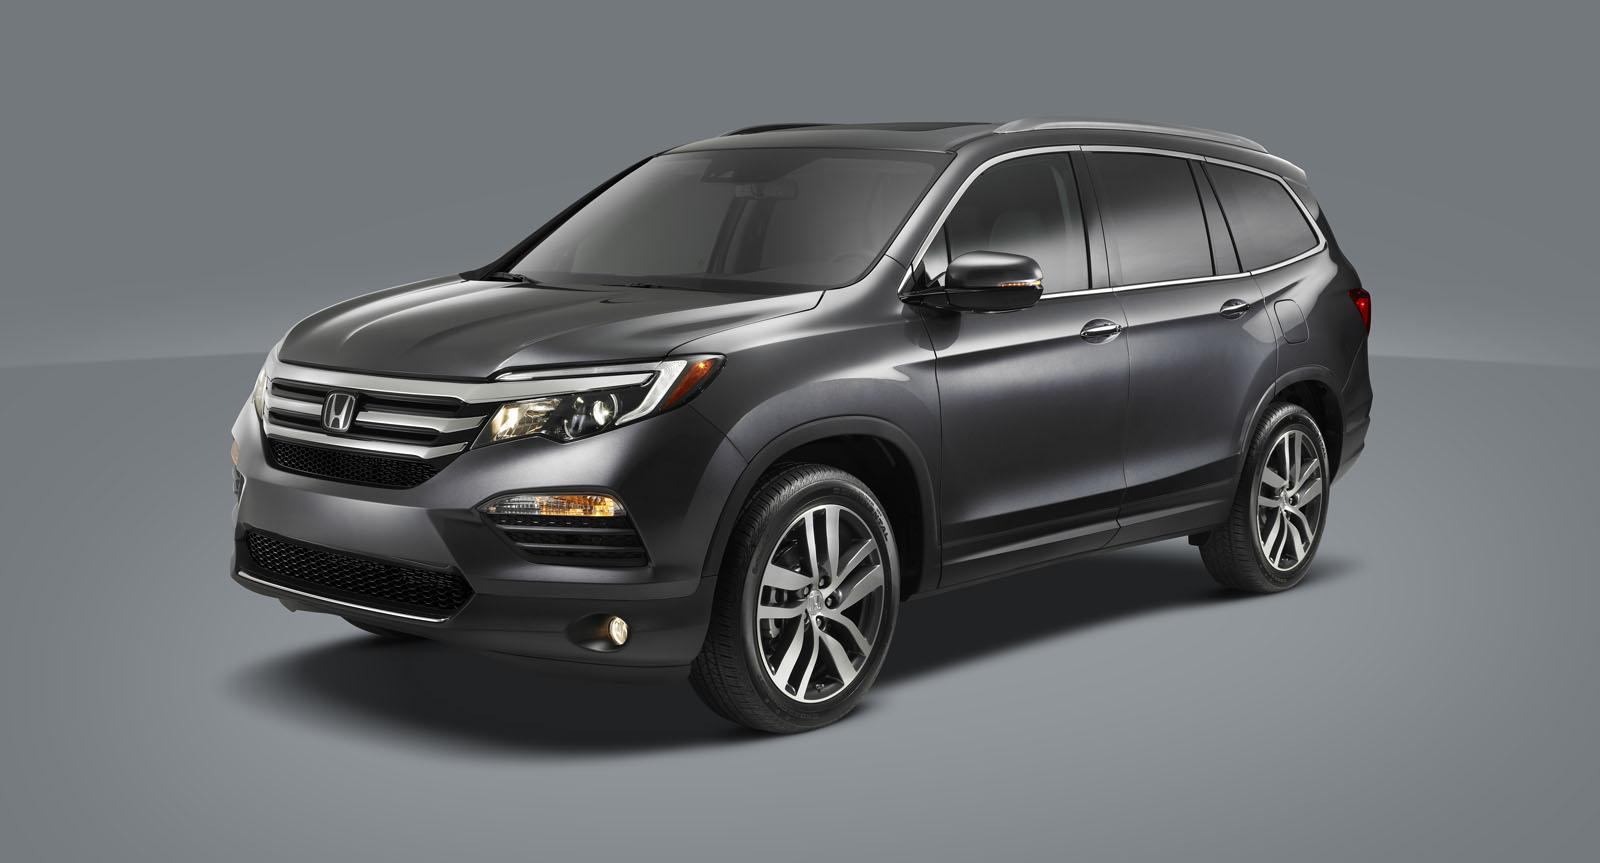 world debut for the 2016 honda pilot at the chicago auto show autoevolution. Black Bedroom Furniture Sets. Home Design Ideas